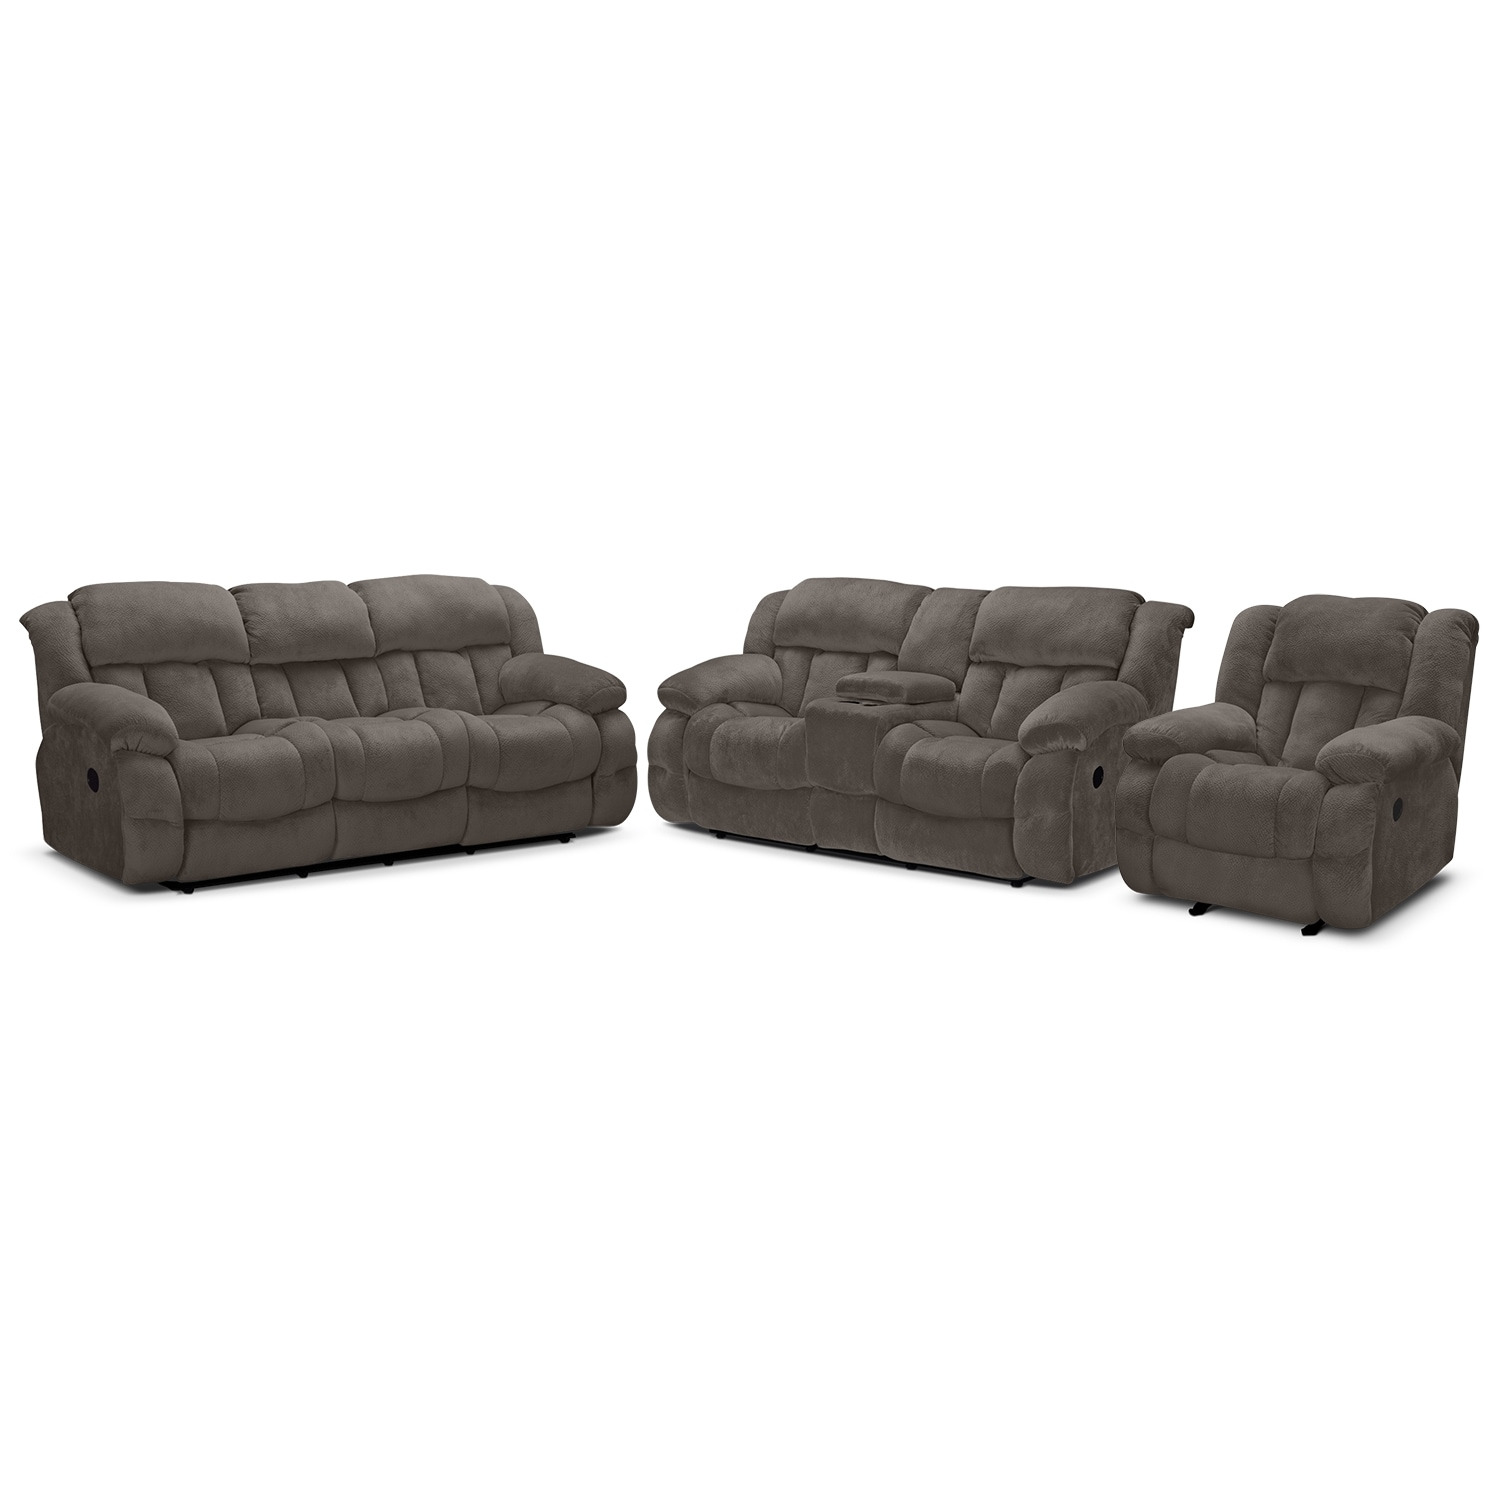 Park City Dual Reclining Sofa, Loveseat And Glider Recliner Set  Gray By  One80